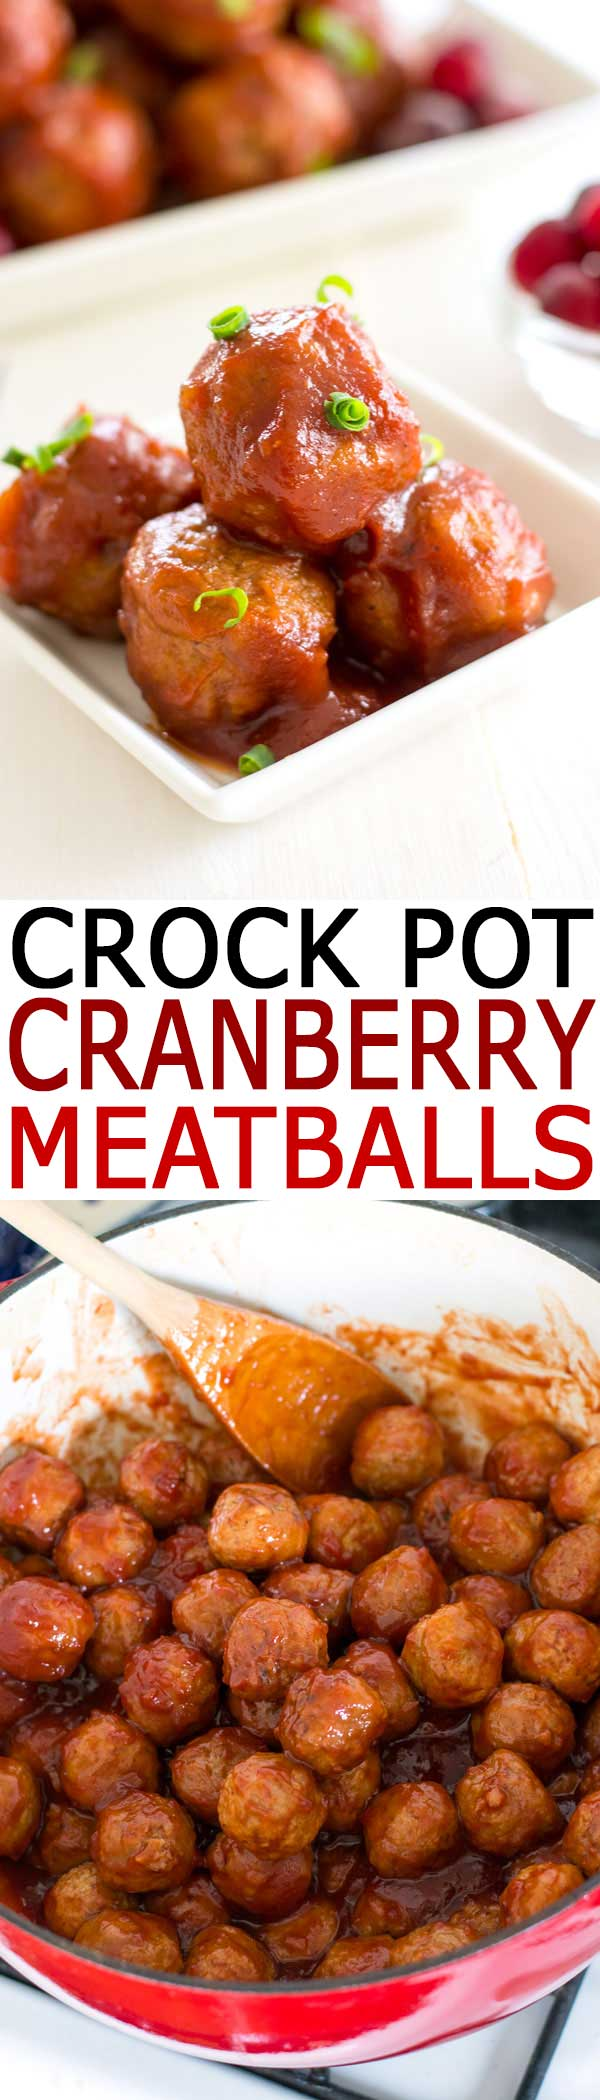 crock pot cranberry meatballs 3 ingredients kitchen gidget. Black Bedroom Furniture Sets. Home Design Ideas